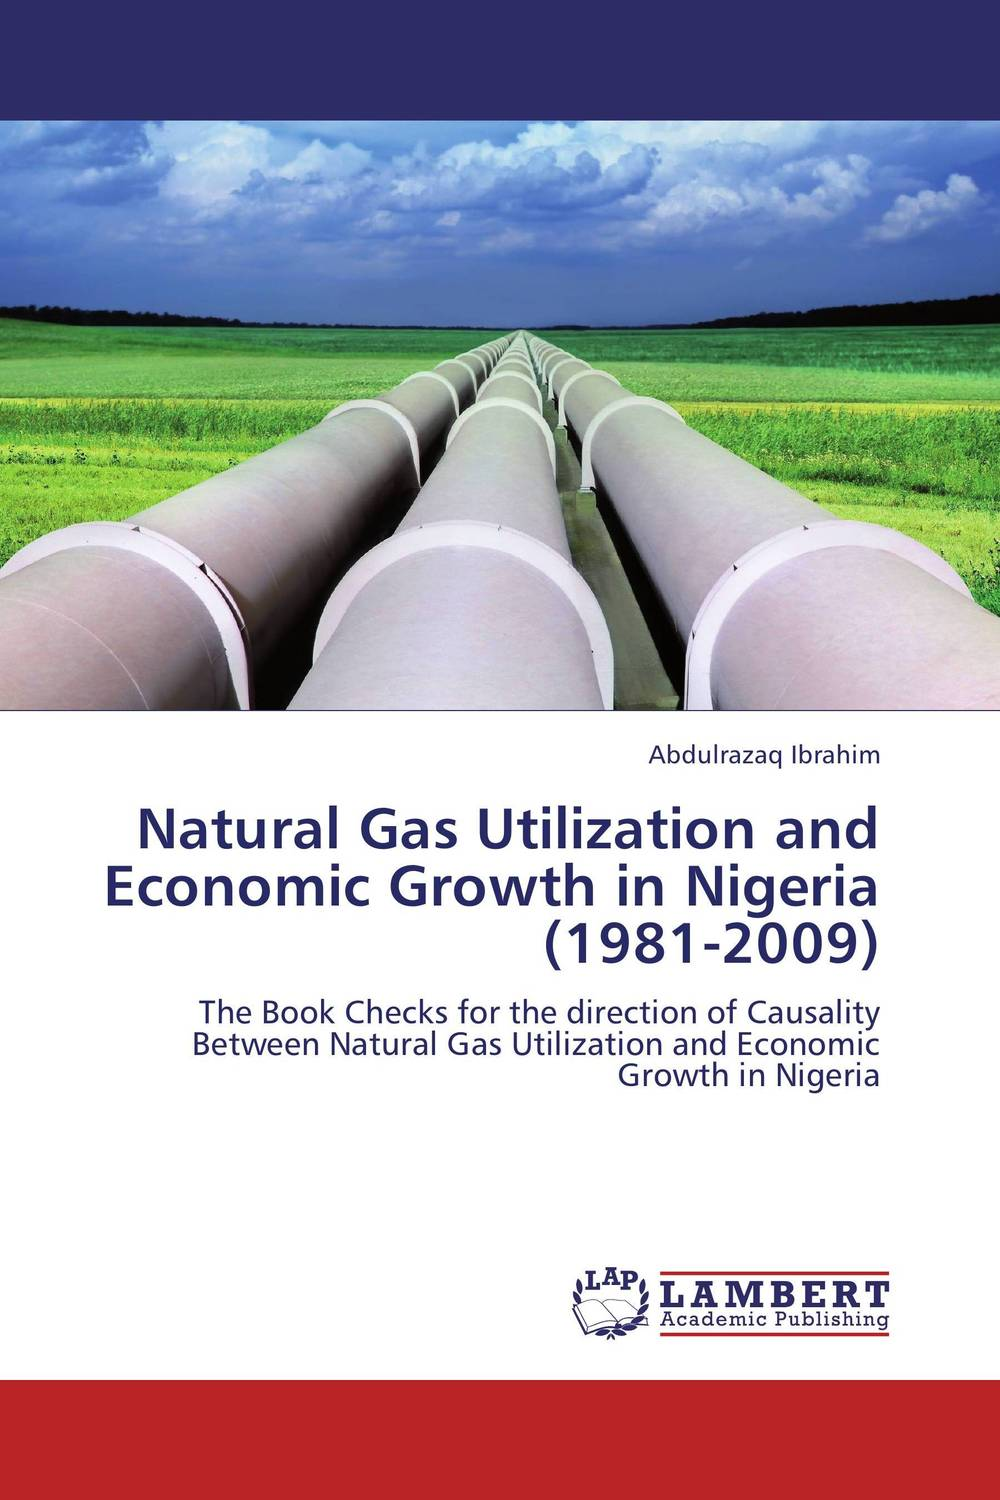 Natural Gas Utilization and Economic Growth in Nigeria (1981-2009) esam jassim hydrate formation and deposition in natural gas flow line